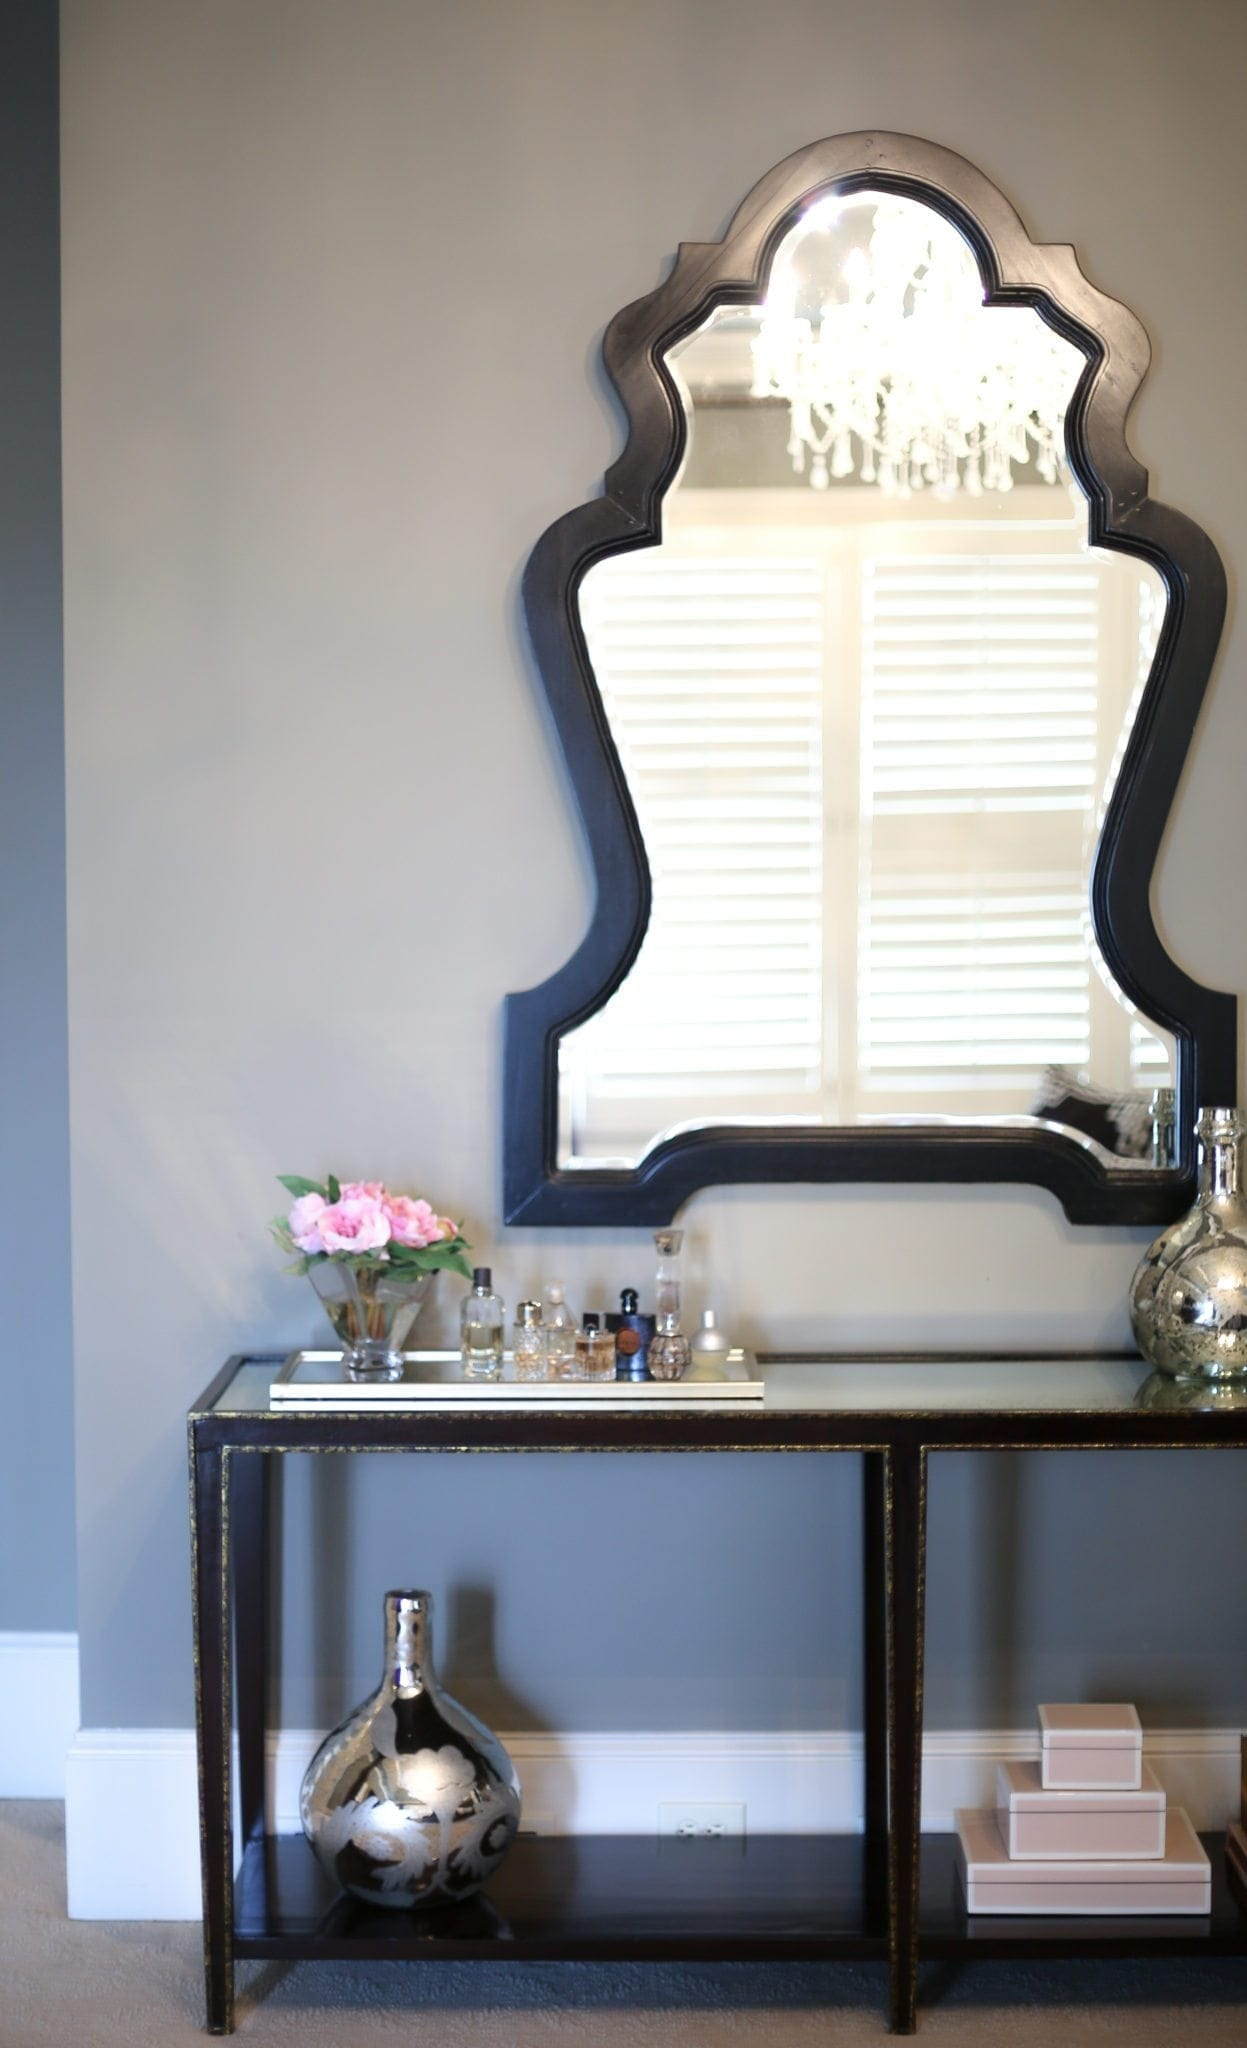 Benjamin Moore dark gray paint on the walls of a bedroom decorated in gray, gold and black. Oversized large black framed mirror.